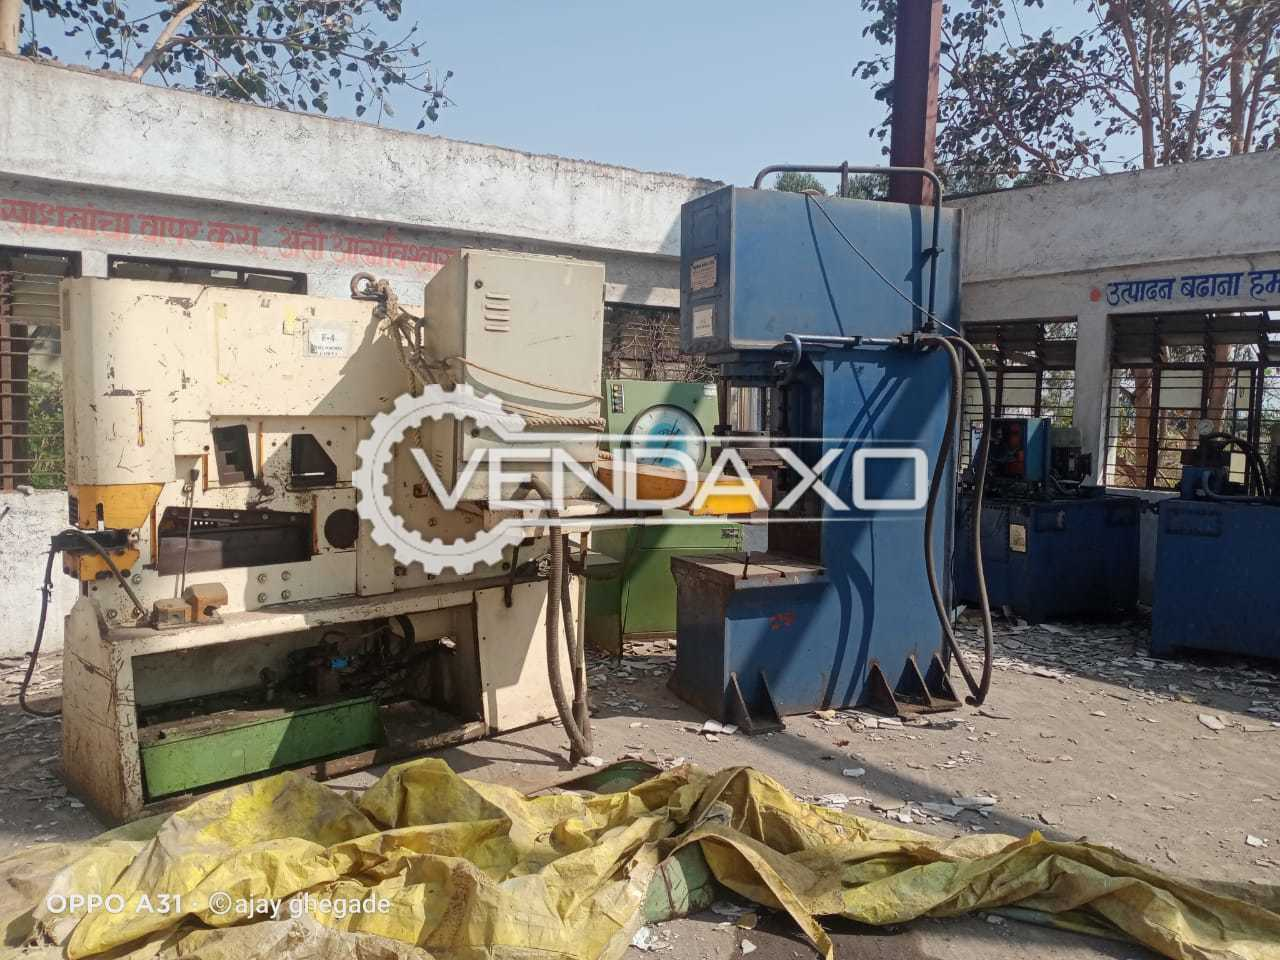 For Sale Use Upsetter Machine - 9 Inch